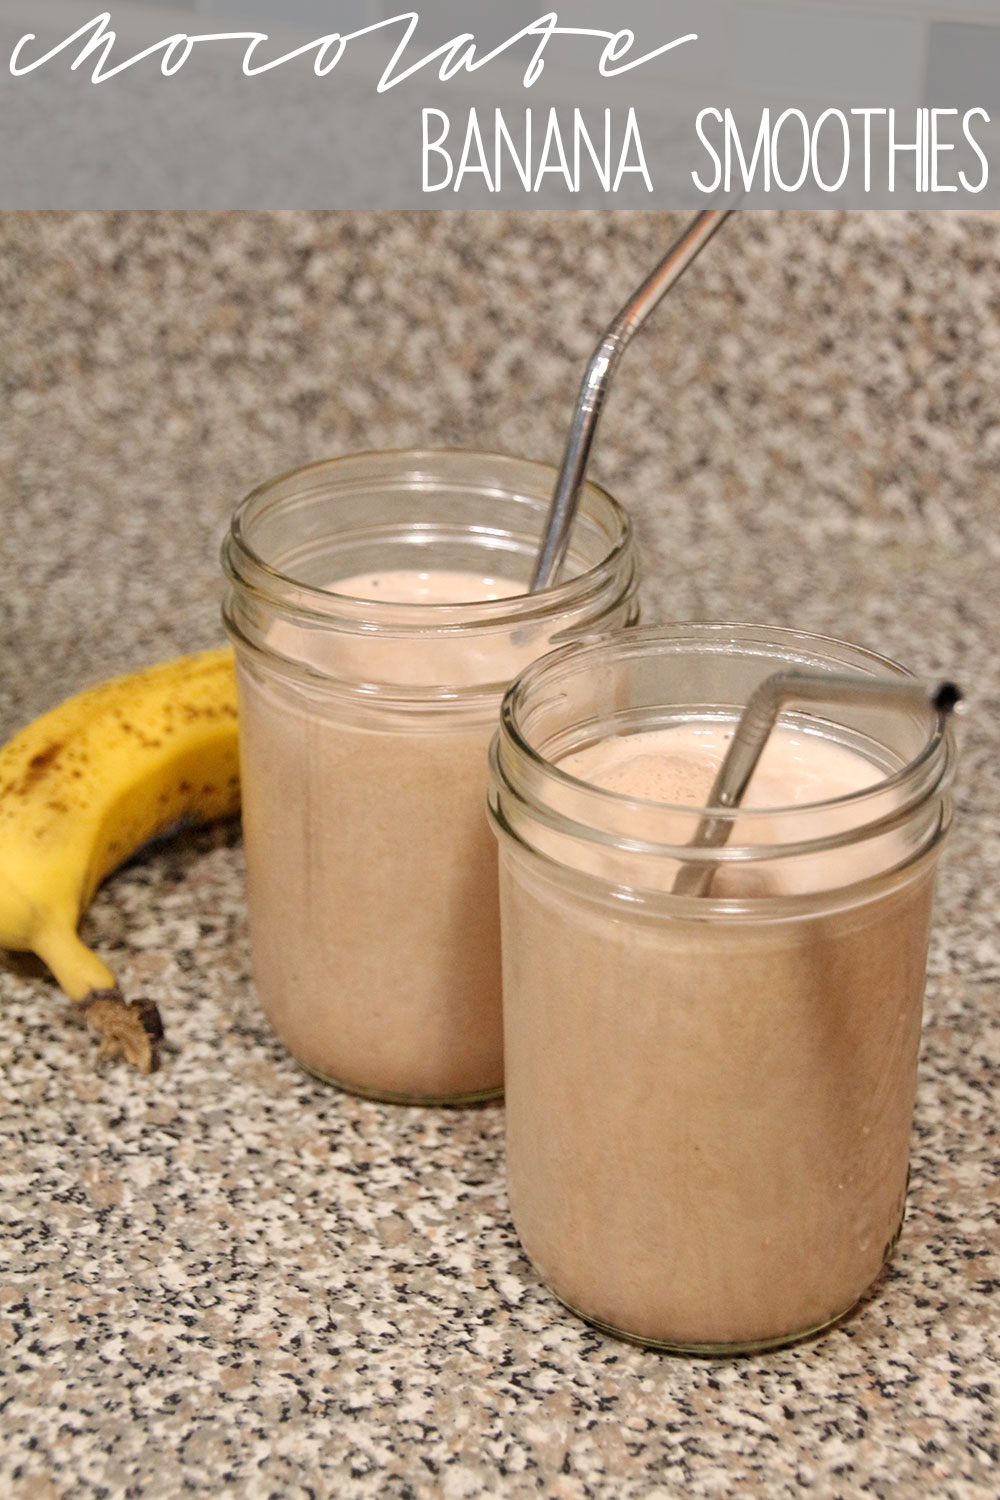 Chocolate-Banana-Smoothies-008-text